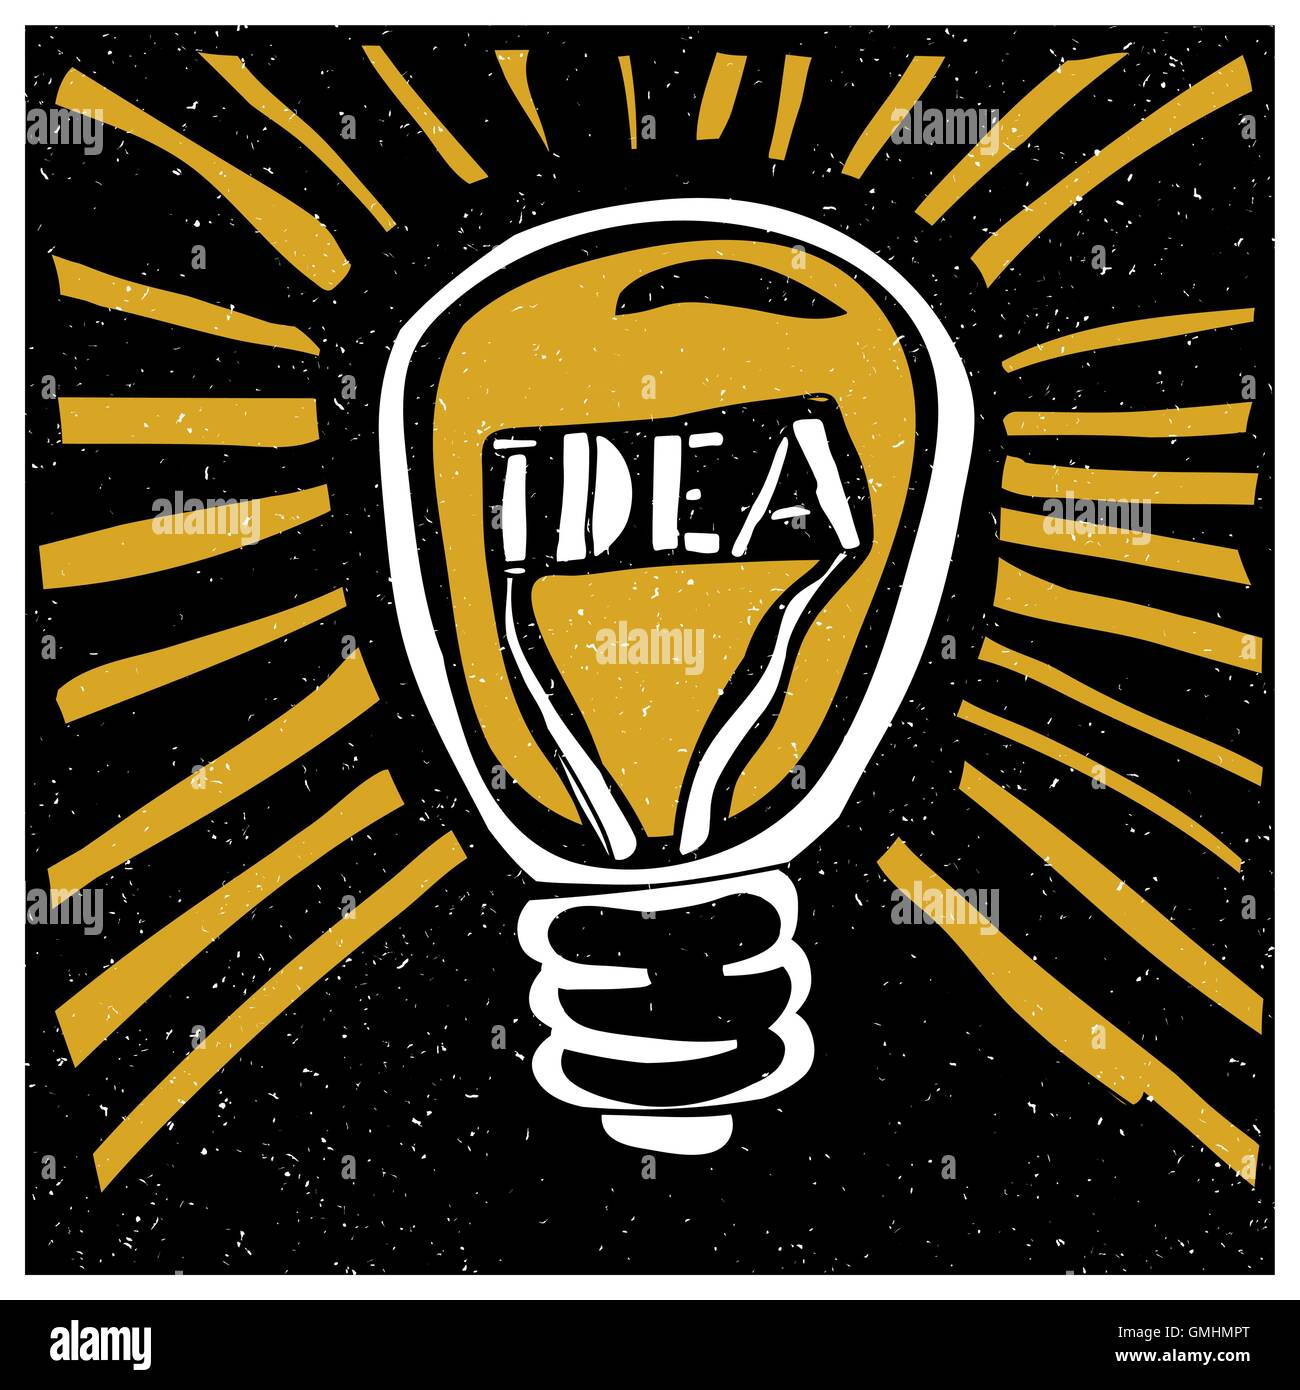 Idea concept illustration. Lightbuld with rays and 'Idea' word. - Stock Image